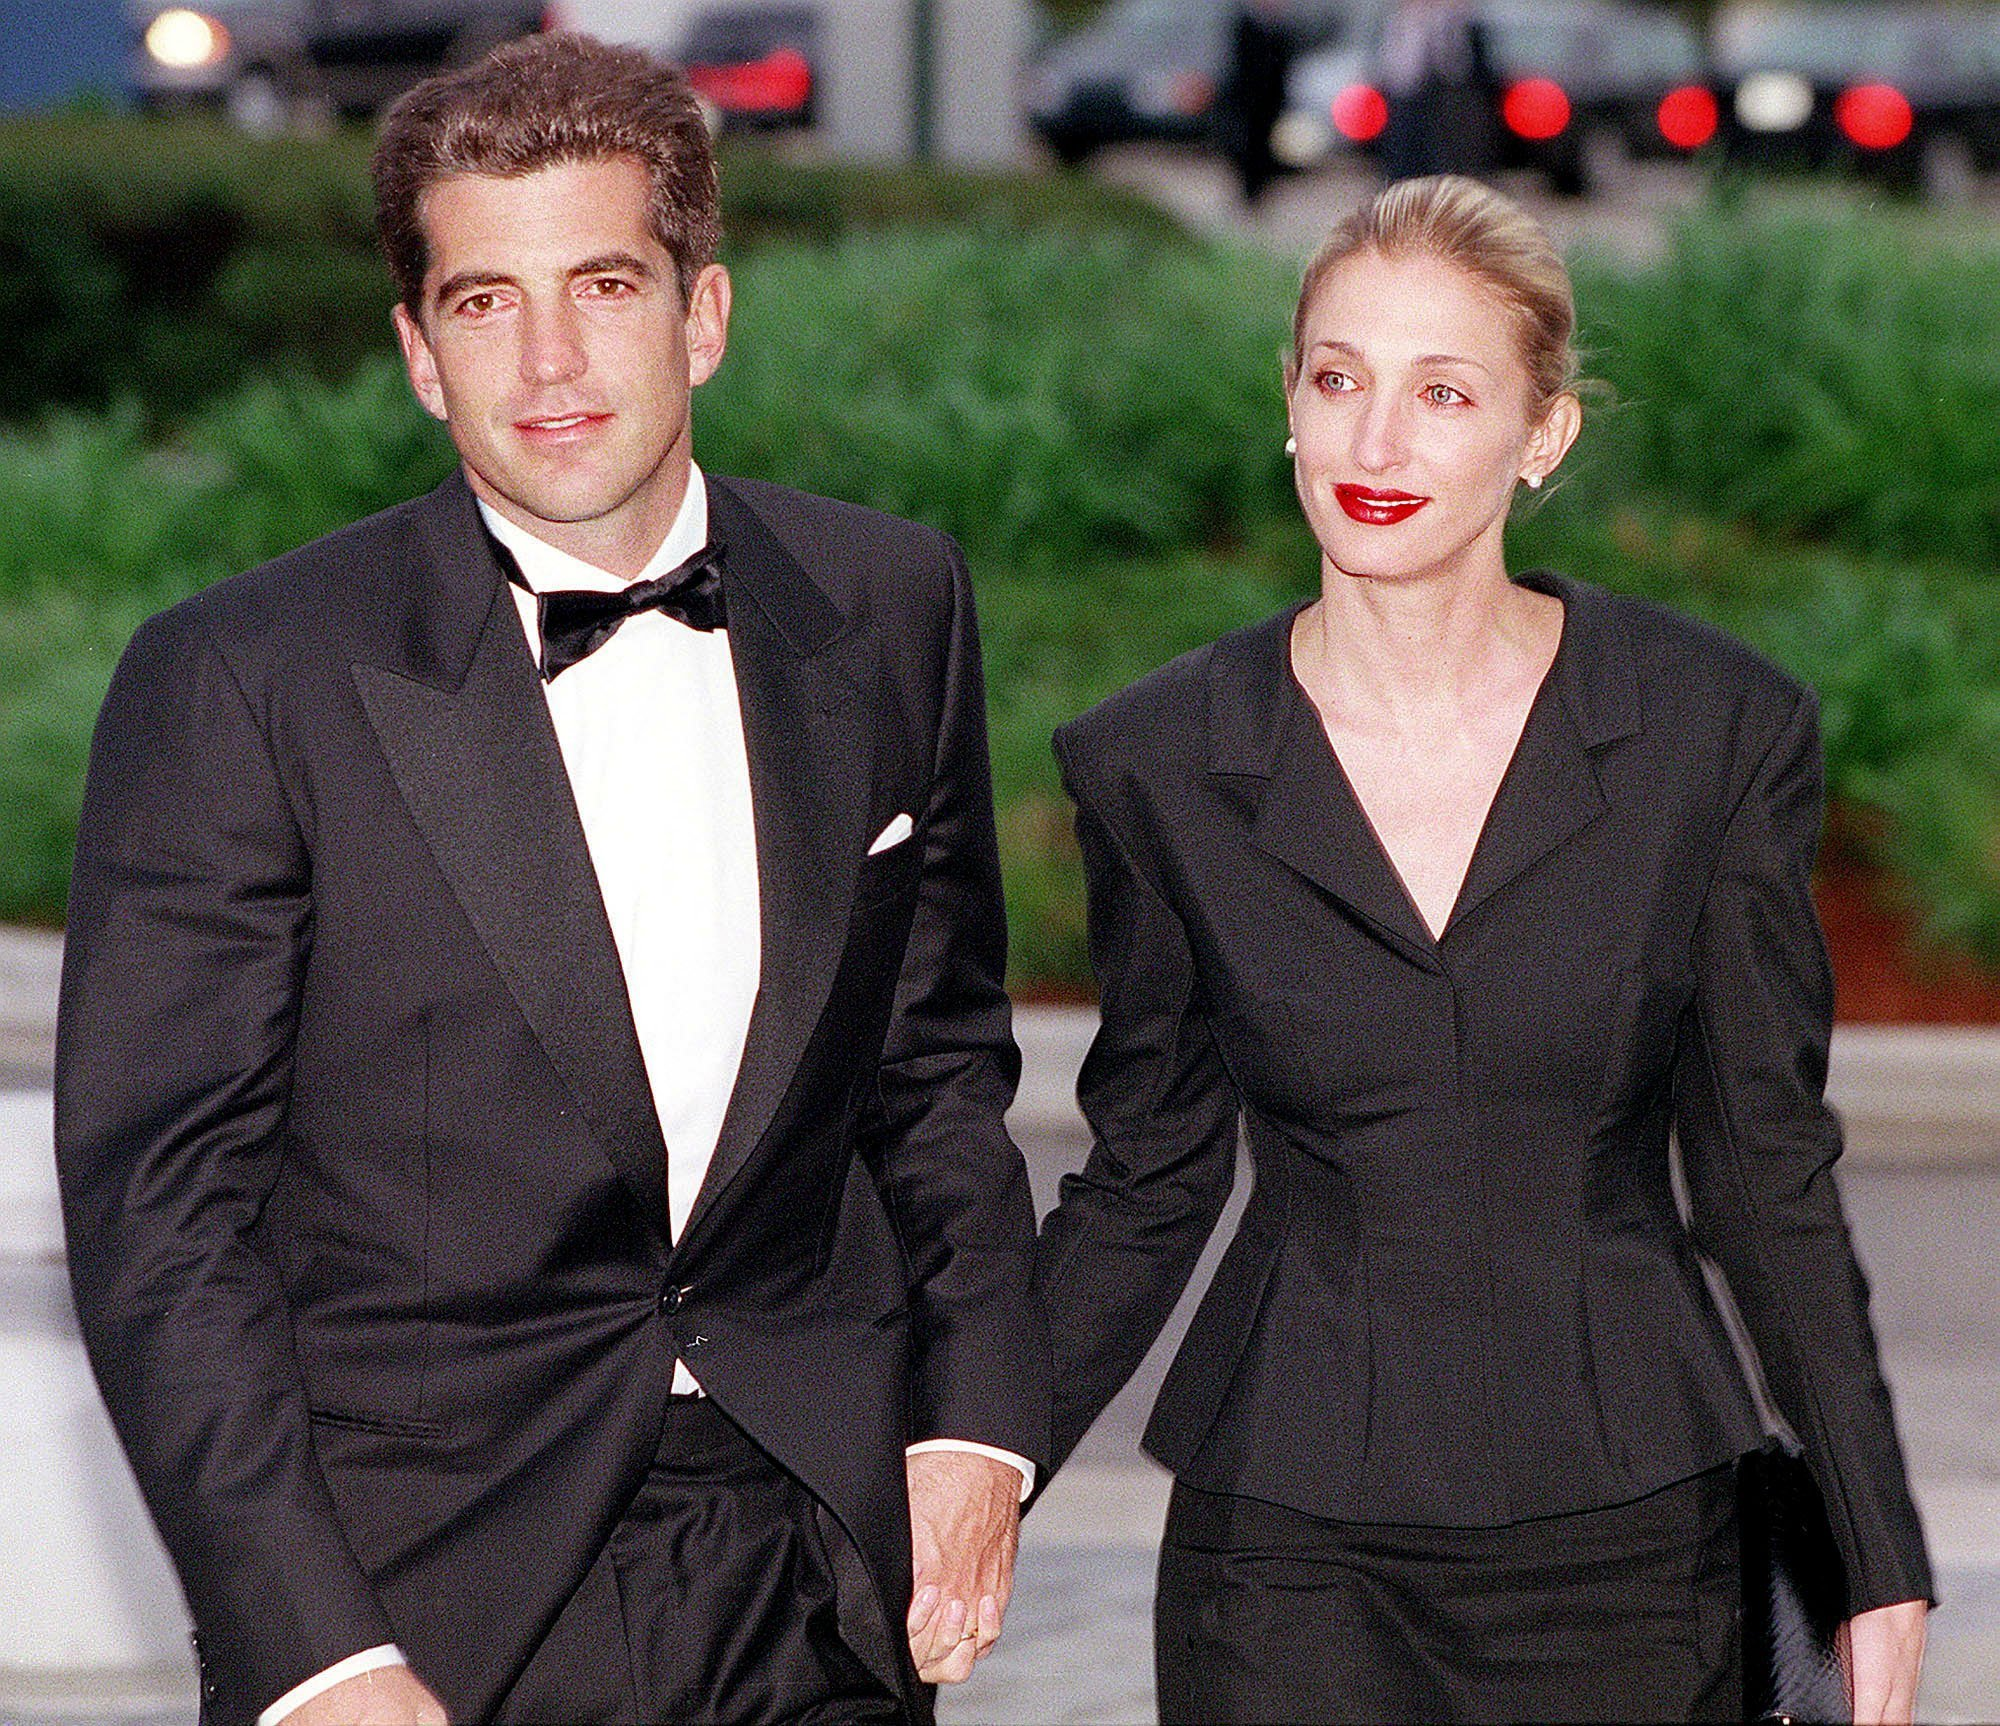 John F. Kennedy, Jr. and Carolyn Bessette Kennedy arrive at the annual John F. Kennedy Library Foundation dinner on May 23, 1999, at the Kennedy Library in Boston, MA. | Source: Getty Images.